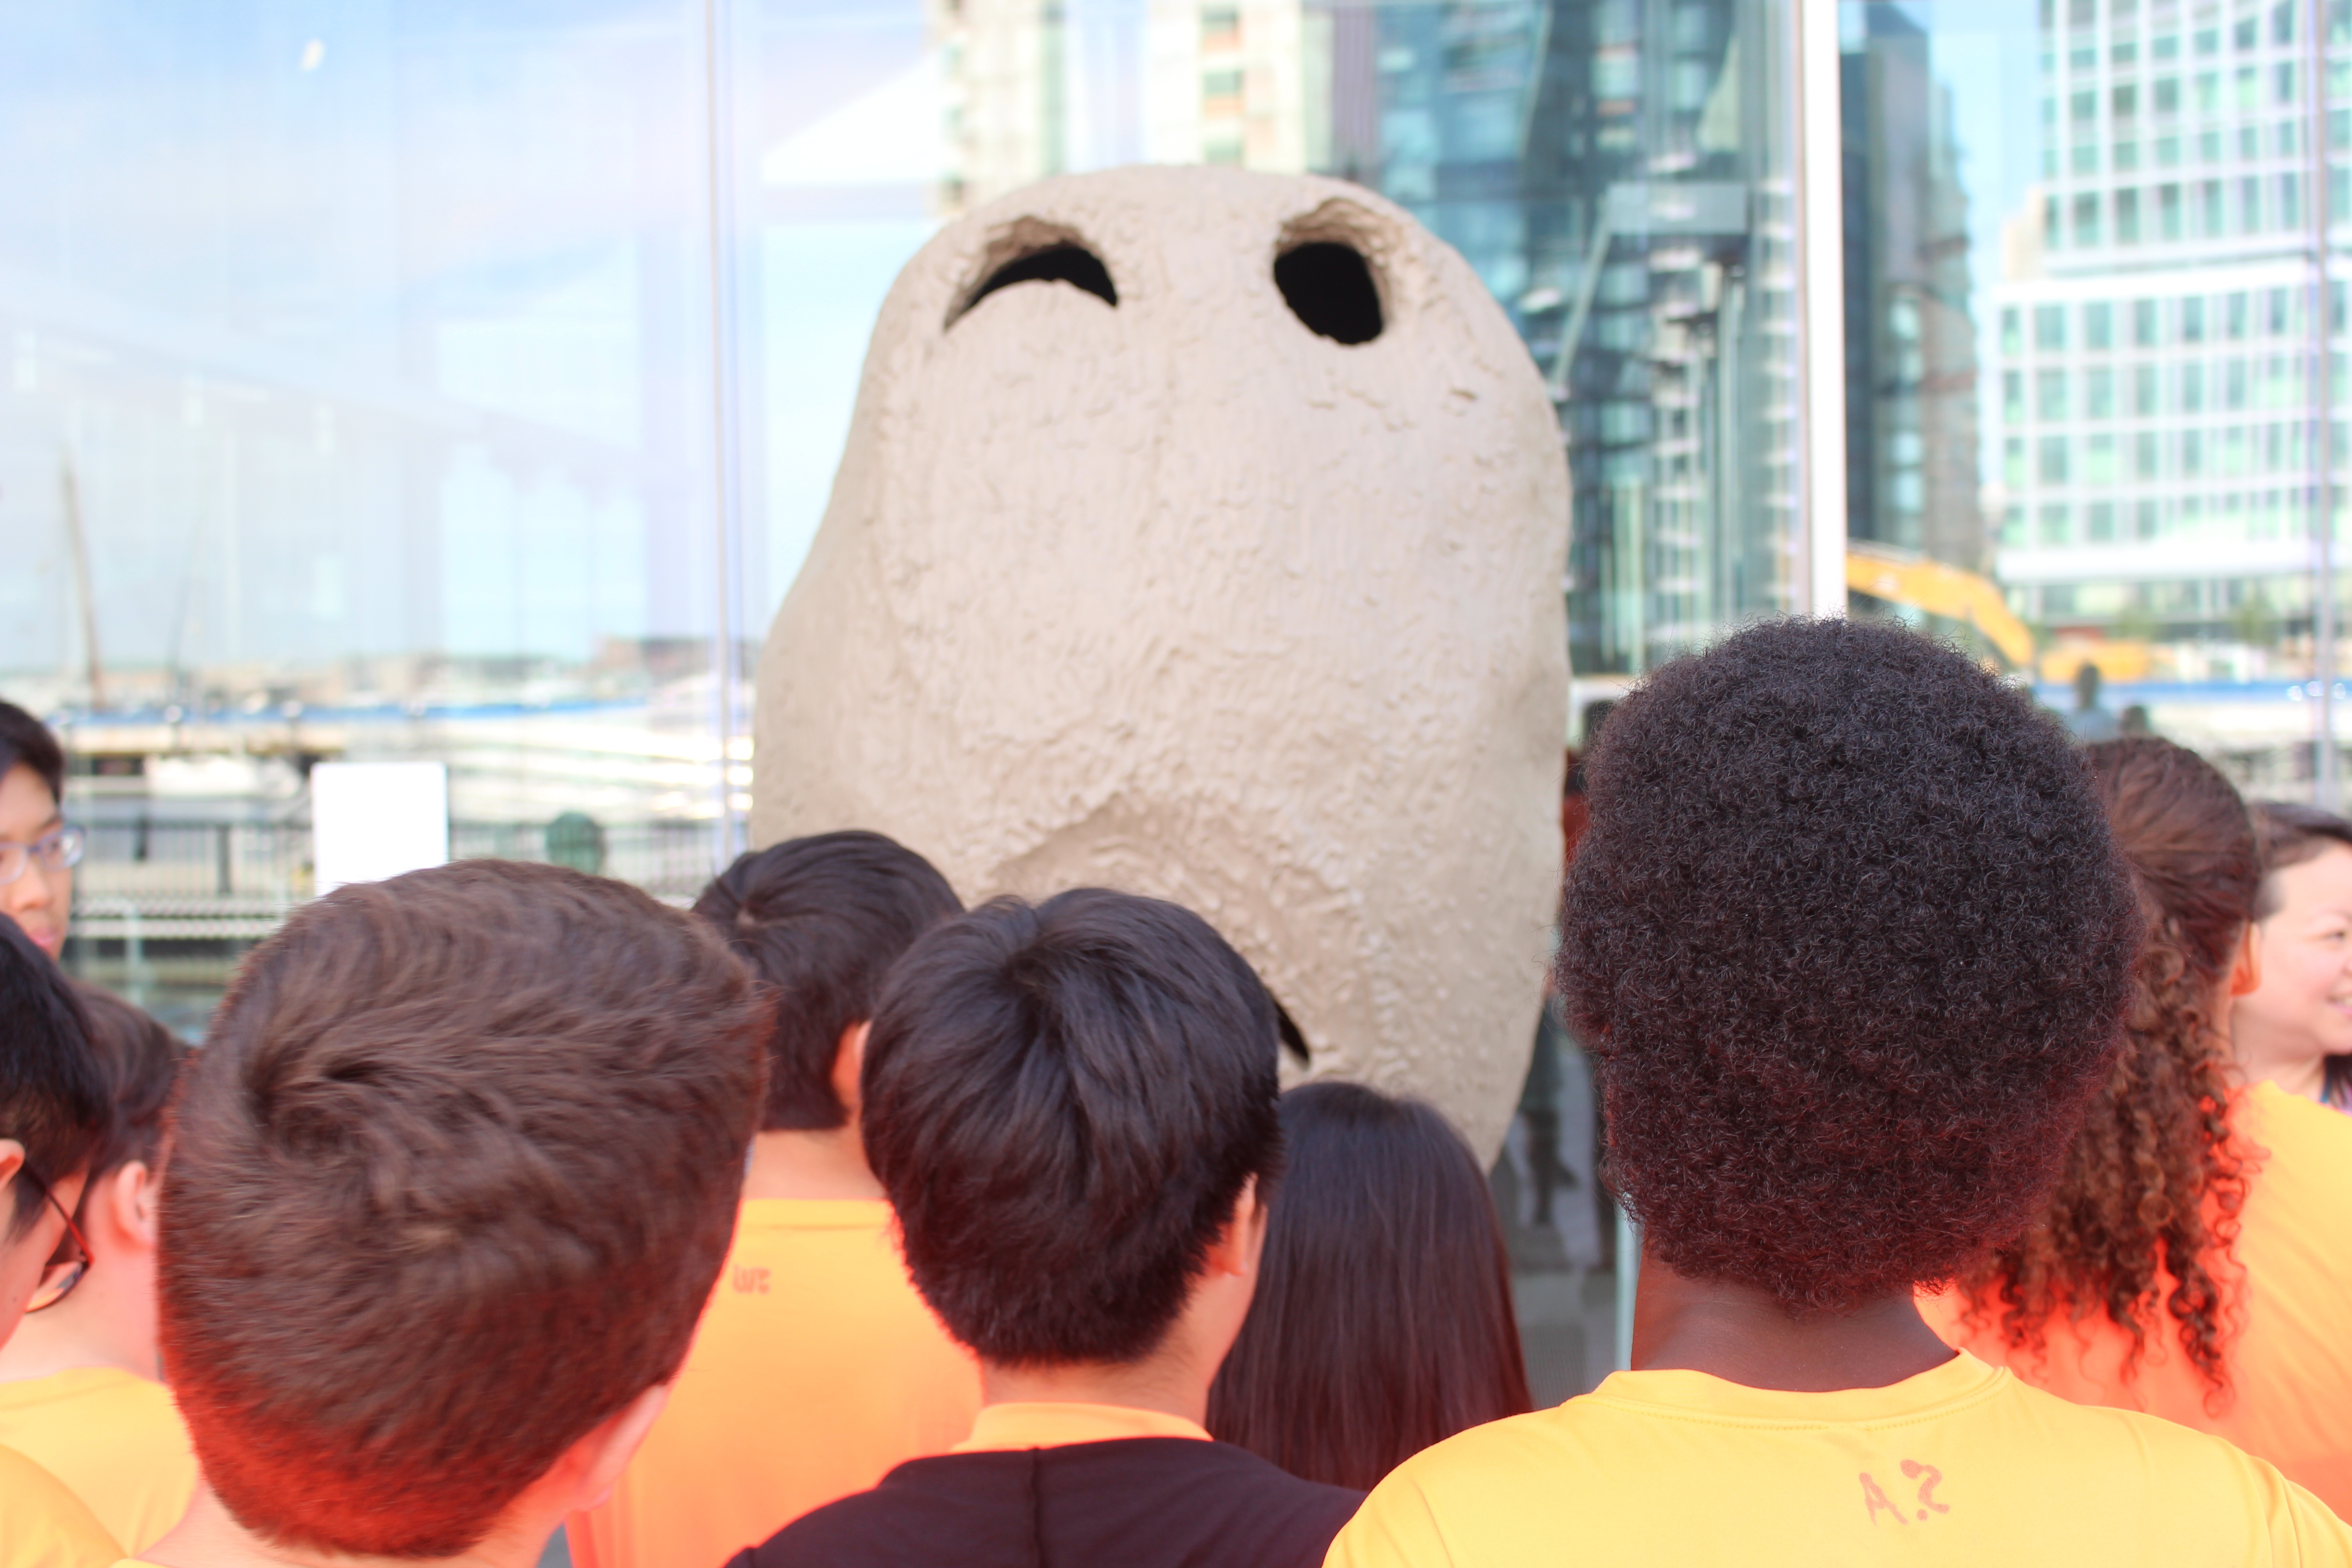 Middle schoolers admire and interpret a sculpture at the Museum of Contemporary Art